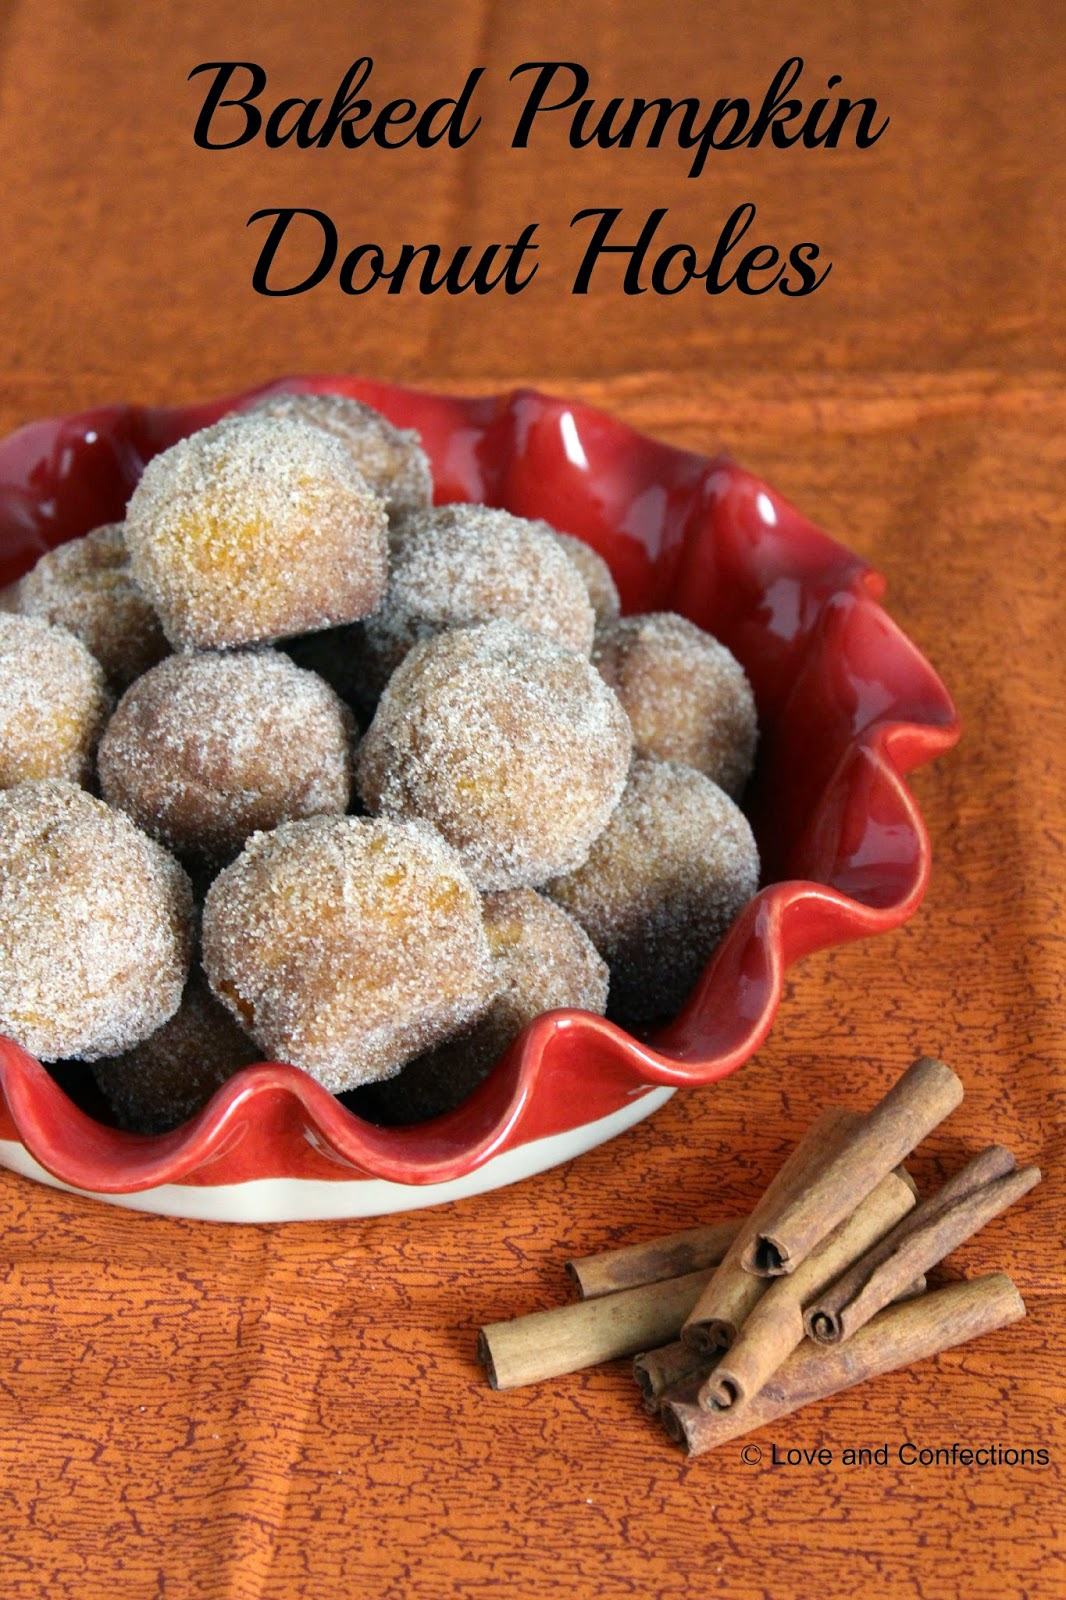 Love and Confections: Baked Pumpkin Donut Holes #PumpkinWeek